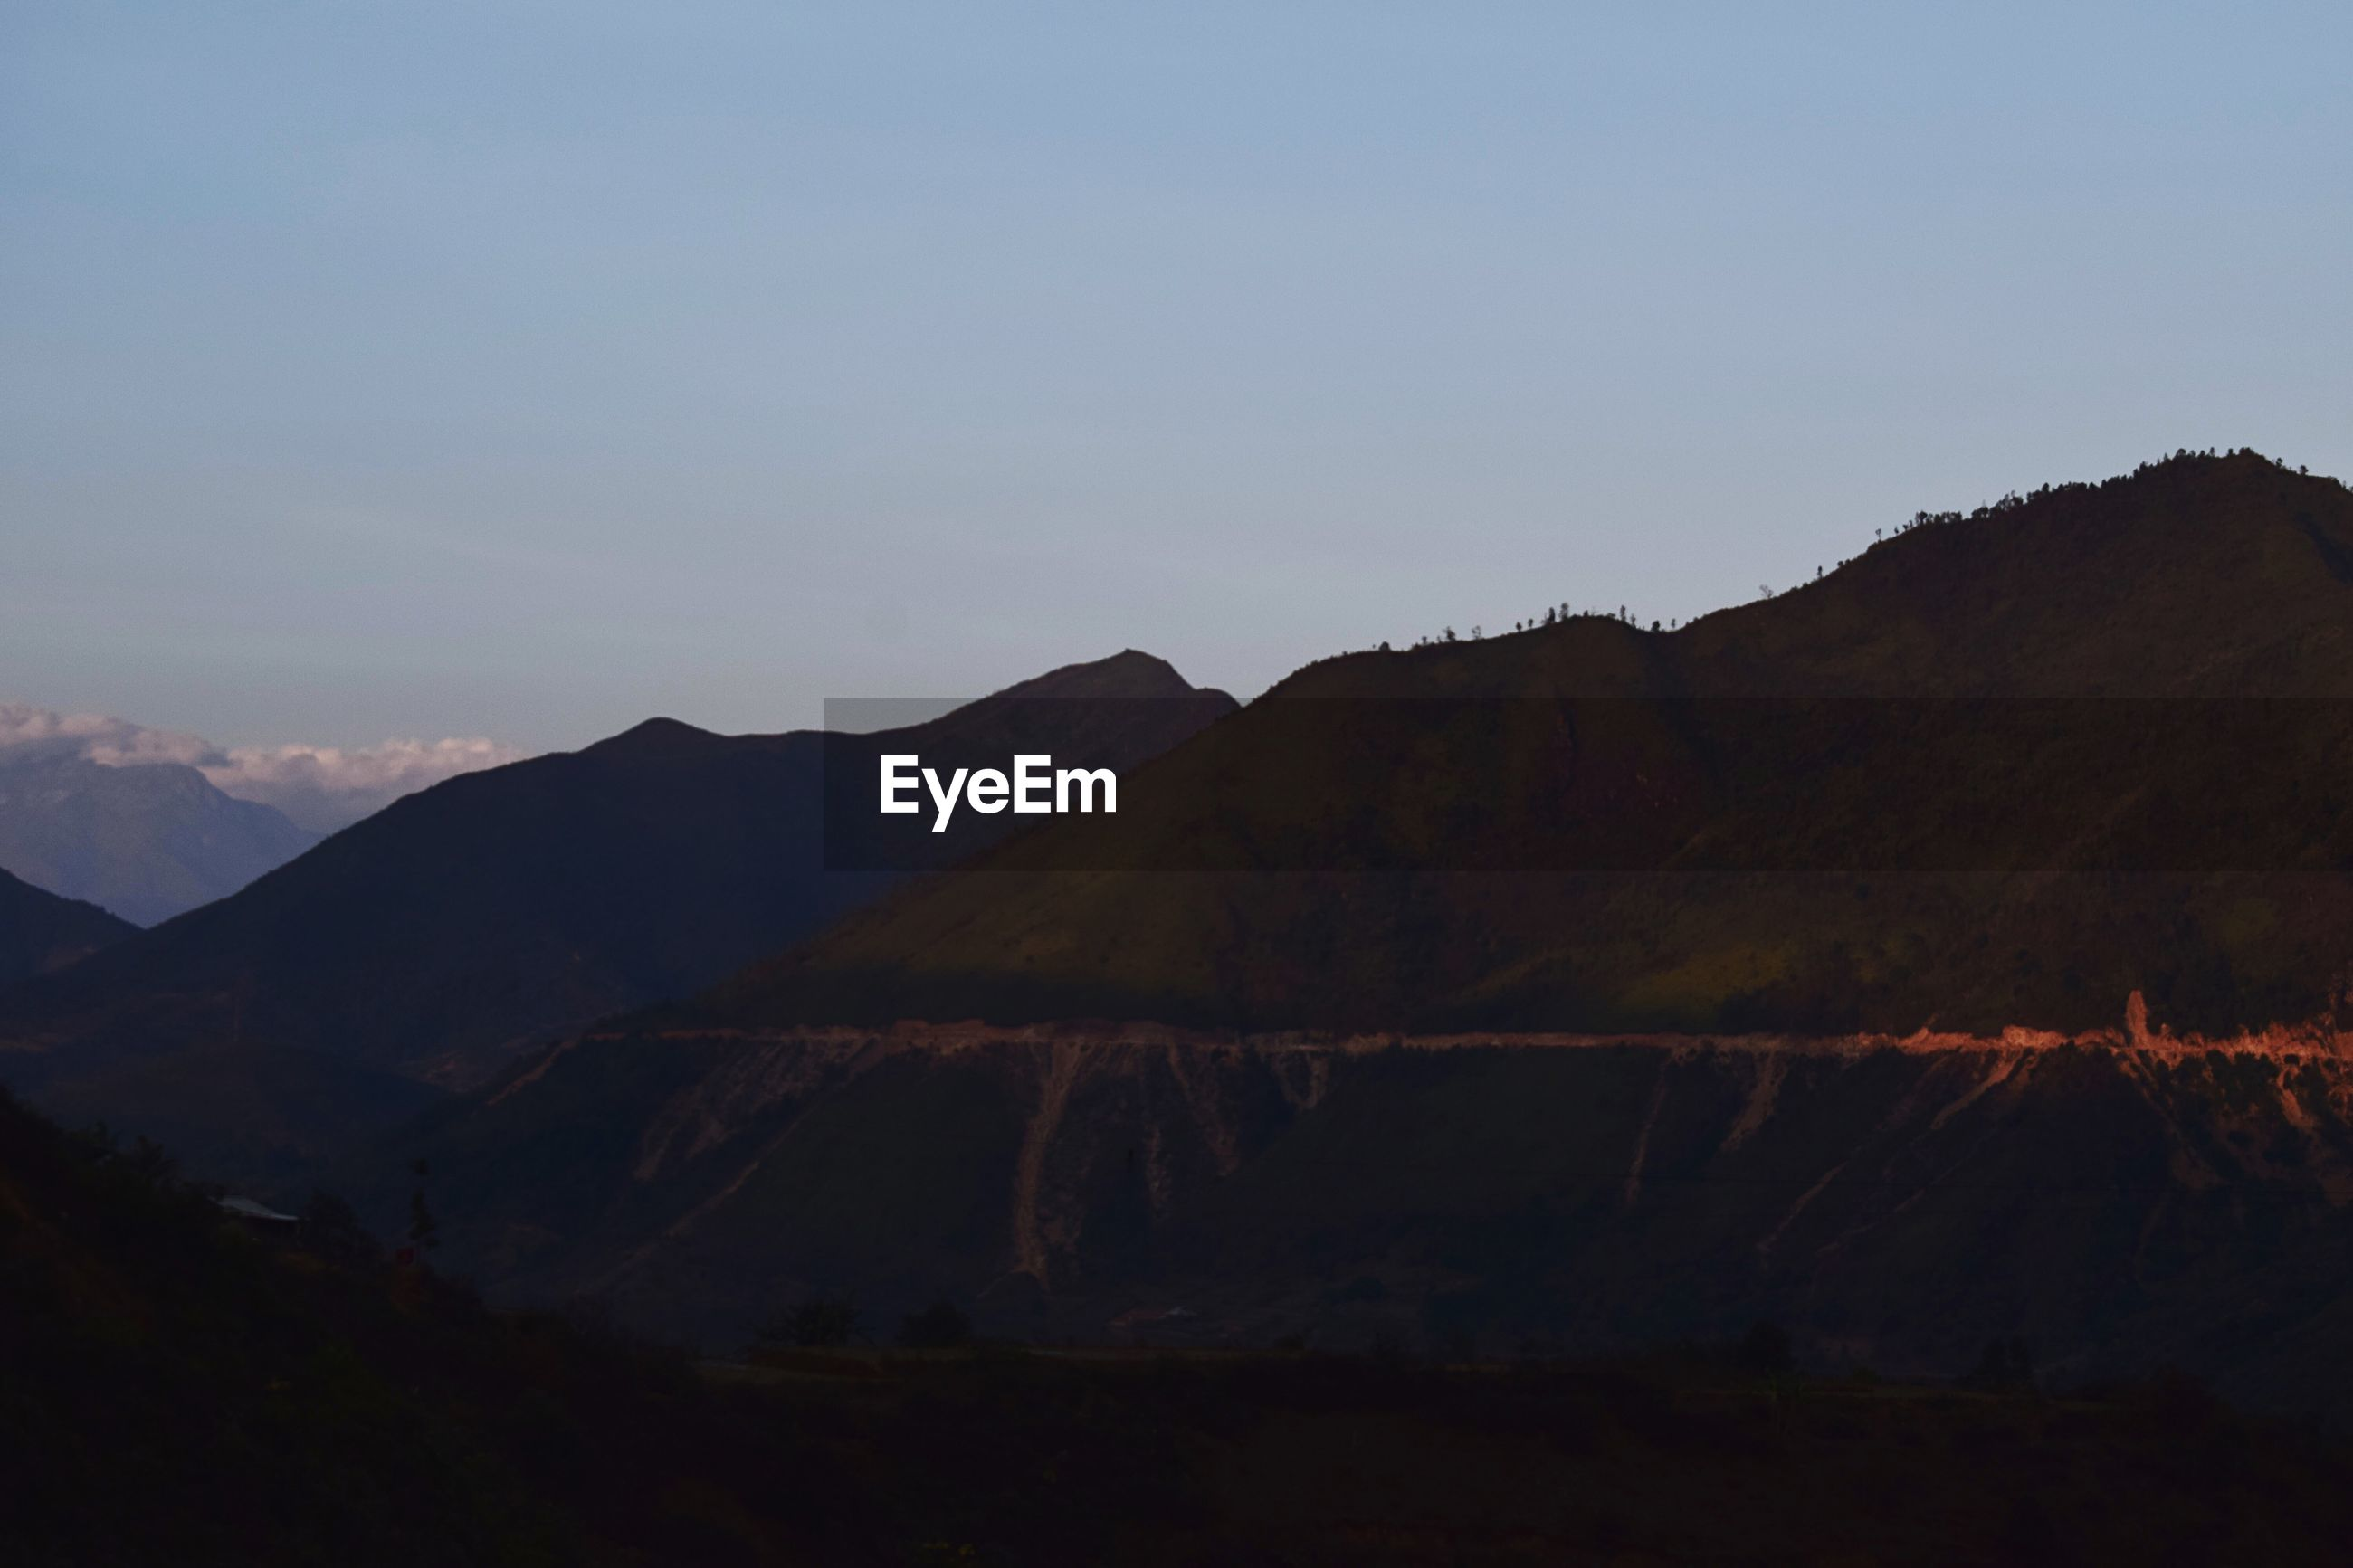 SCENIC VIEW OF SILHOUETTE MOUNTAIN AGAINST SKY AT DUSK